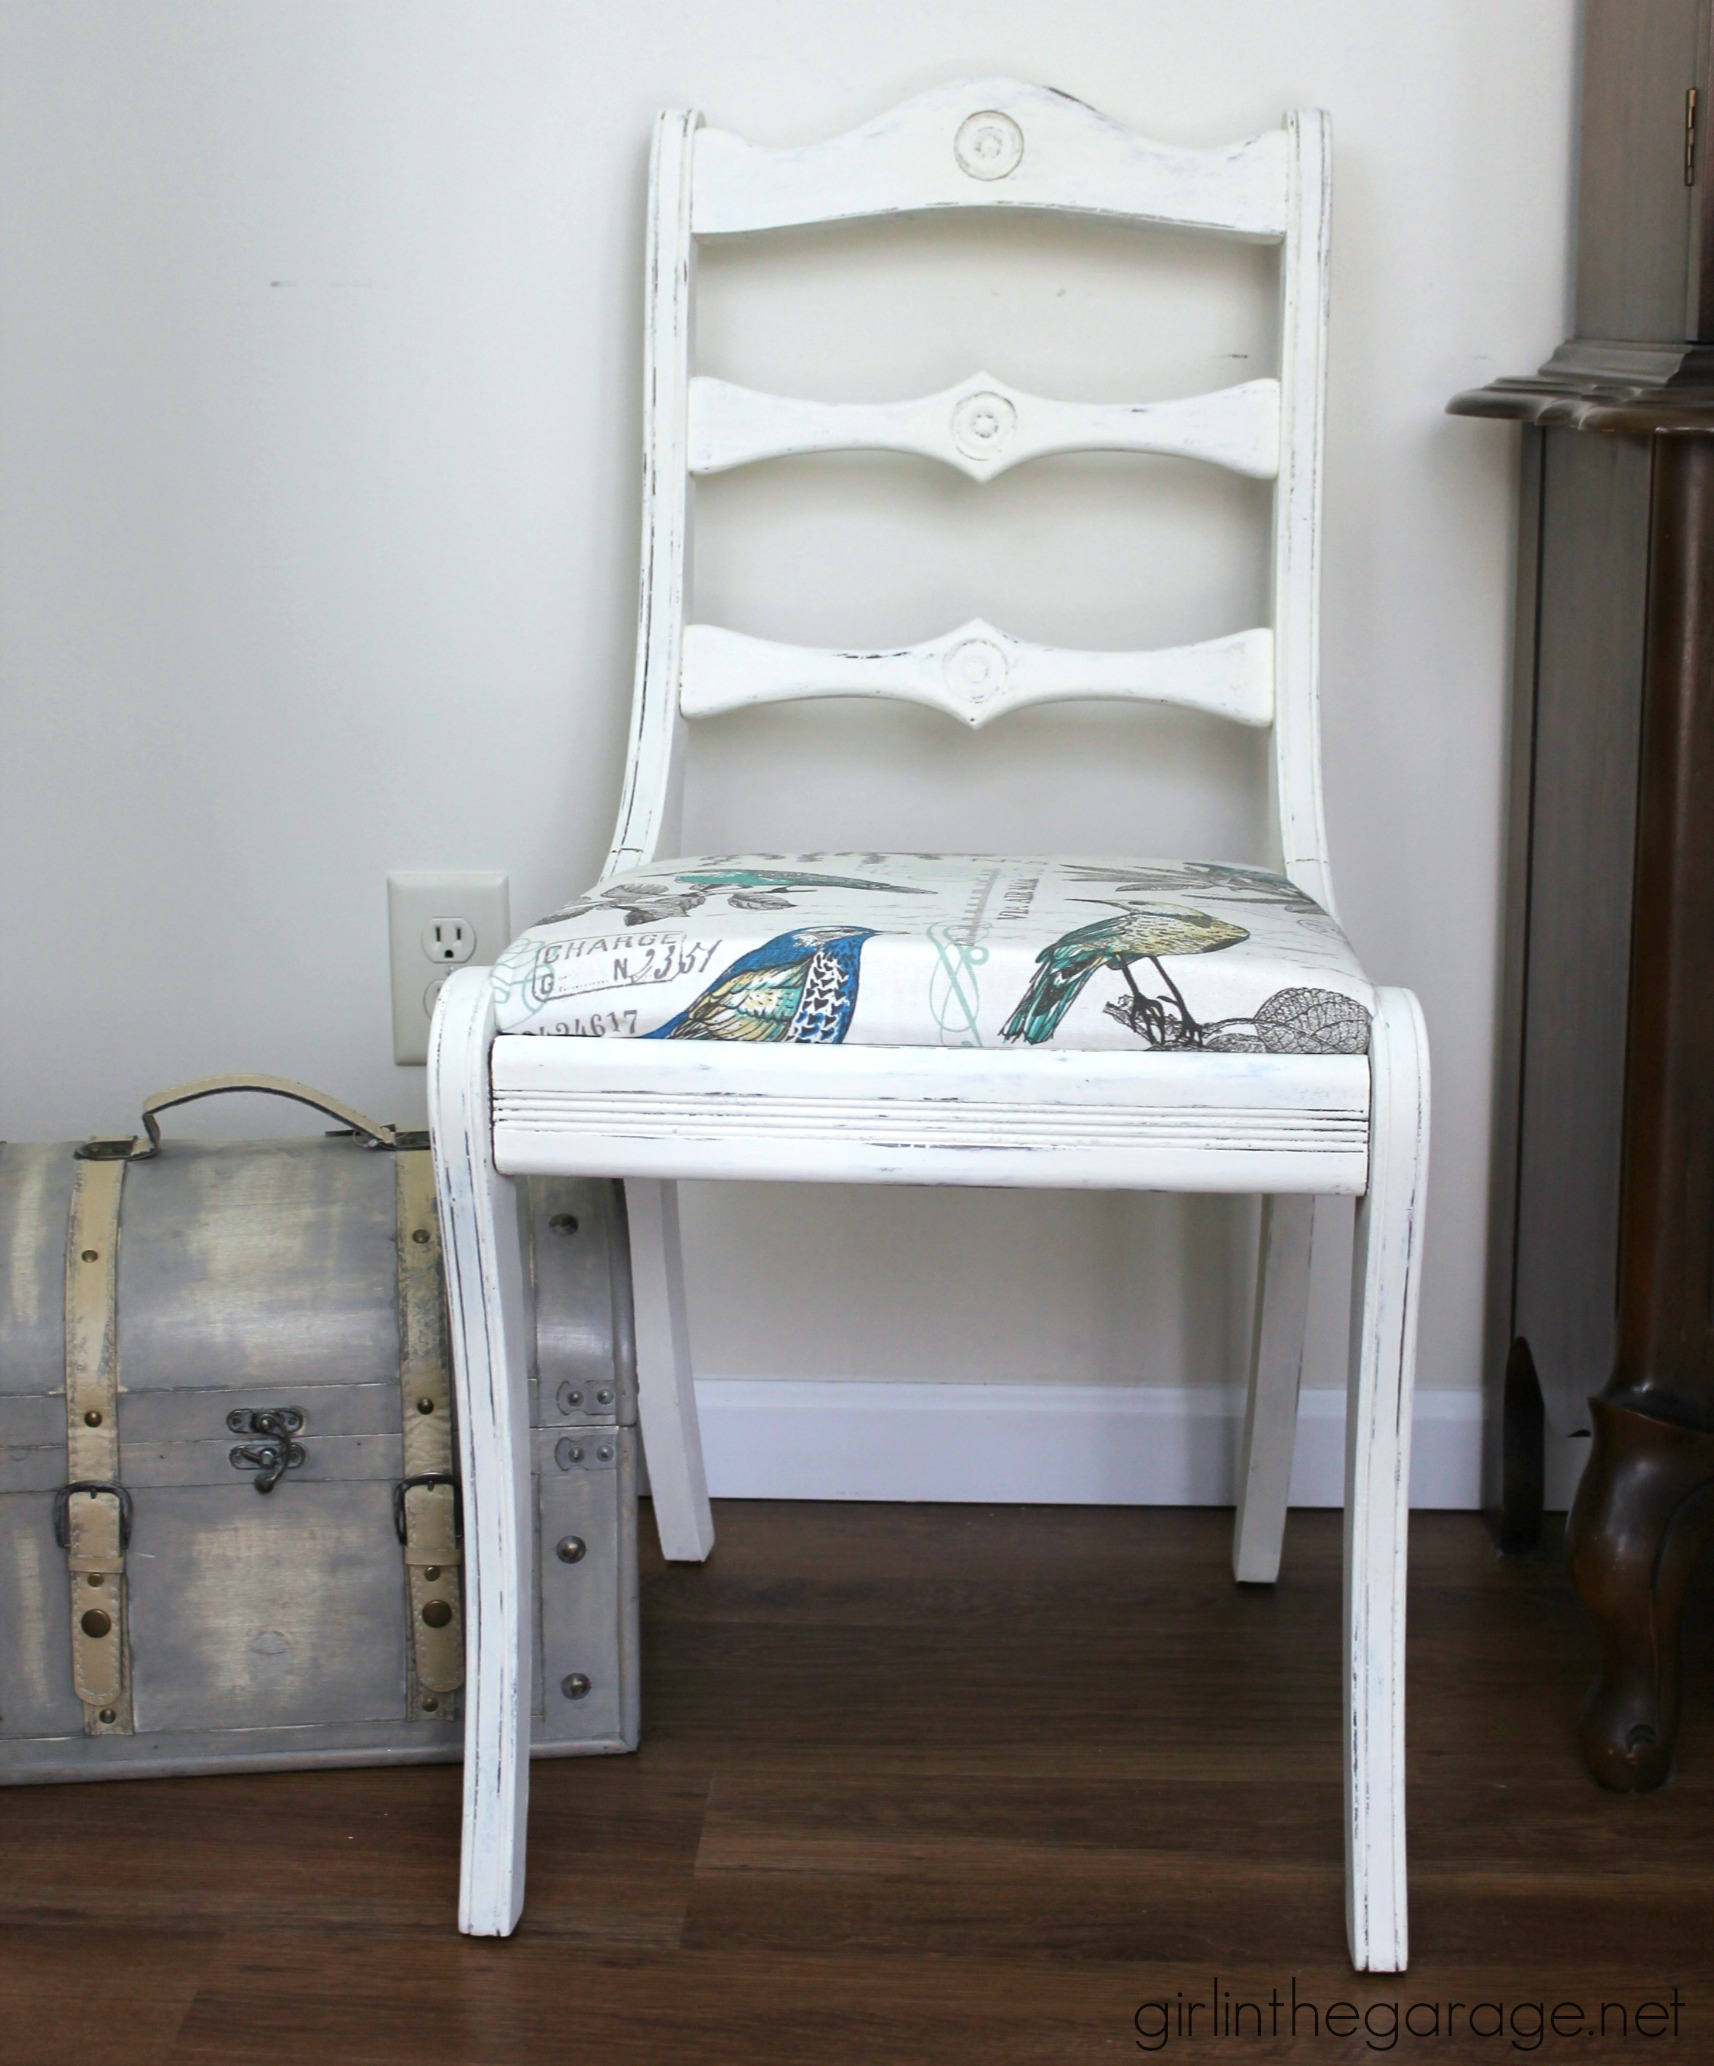 Beau Chair Makeover Tutorial By Girl In The Garage   Themed Furniture Makeover